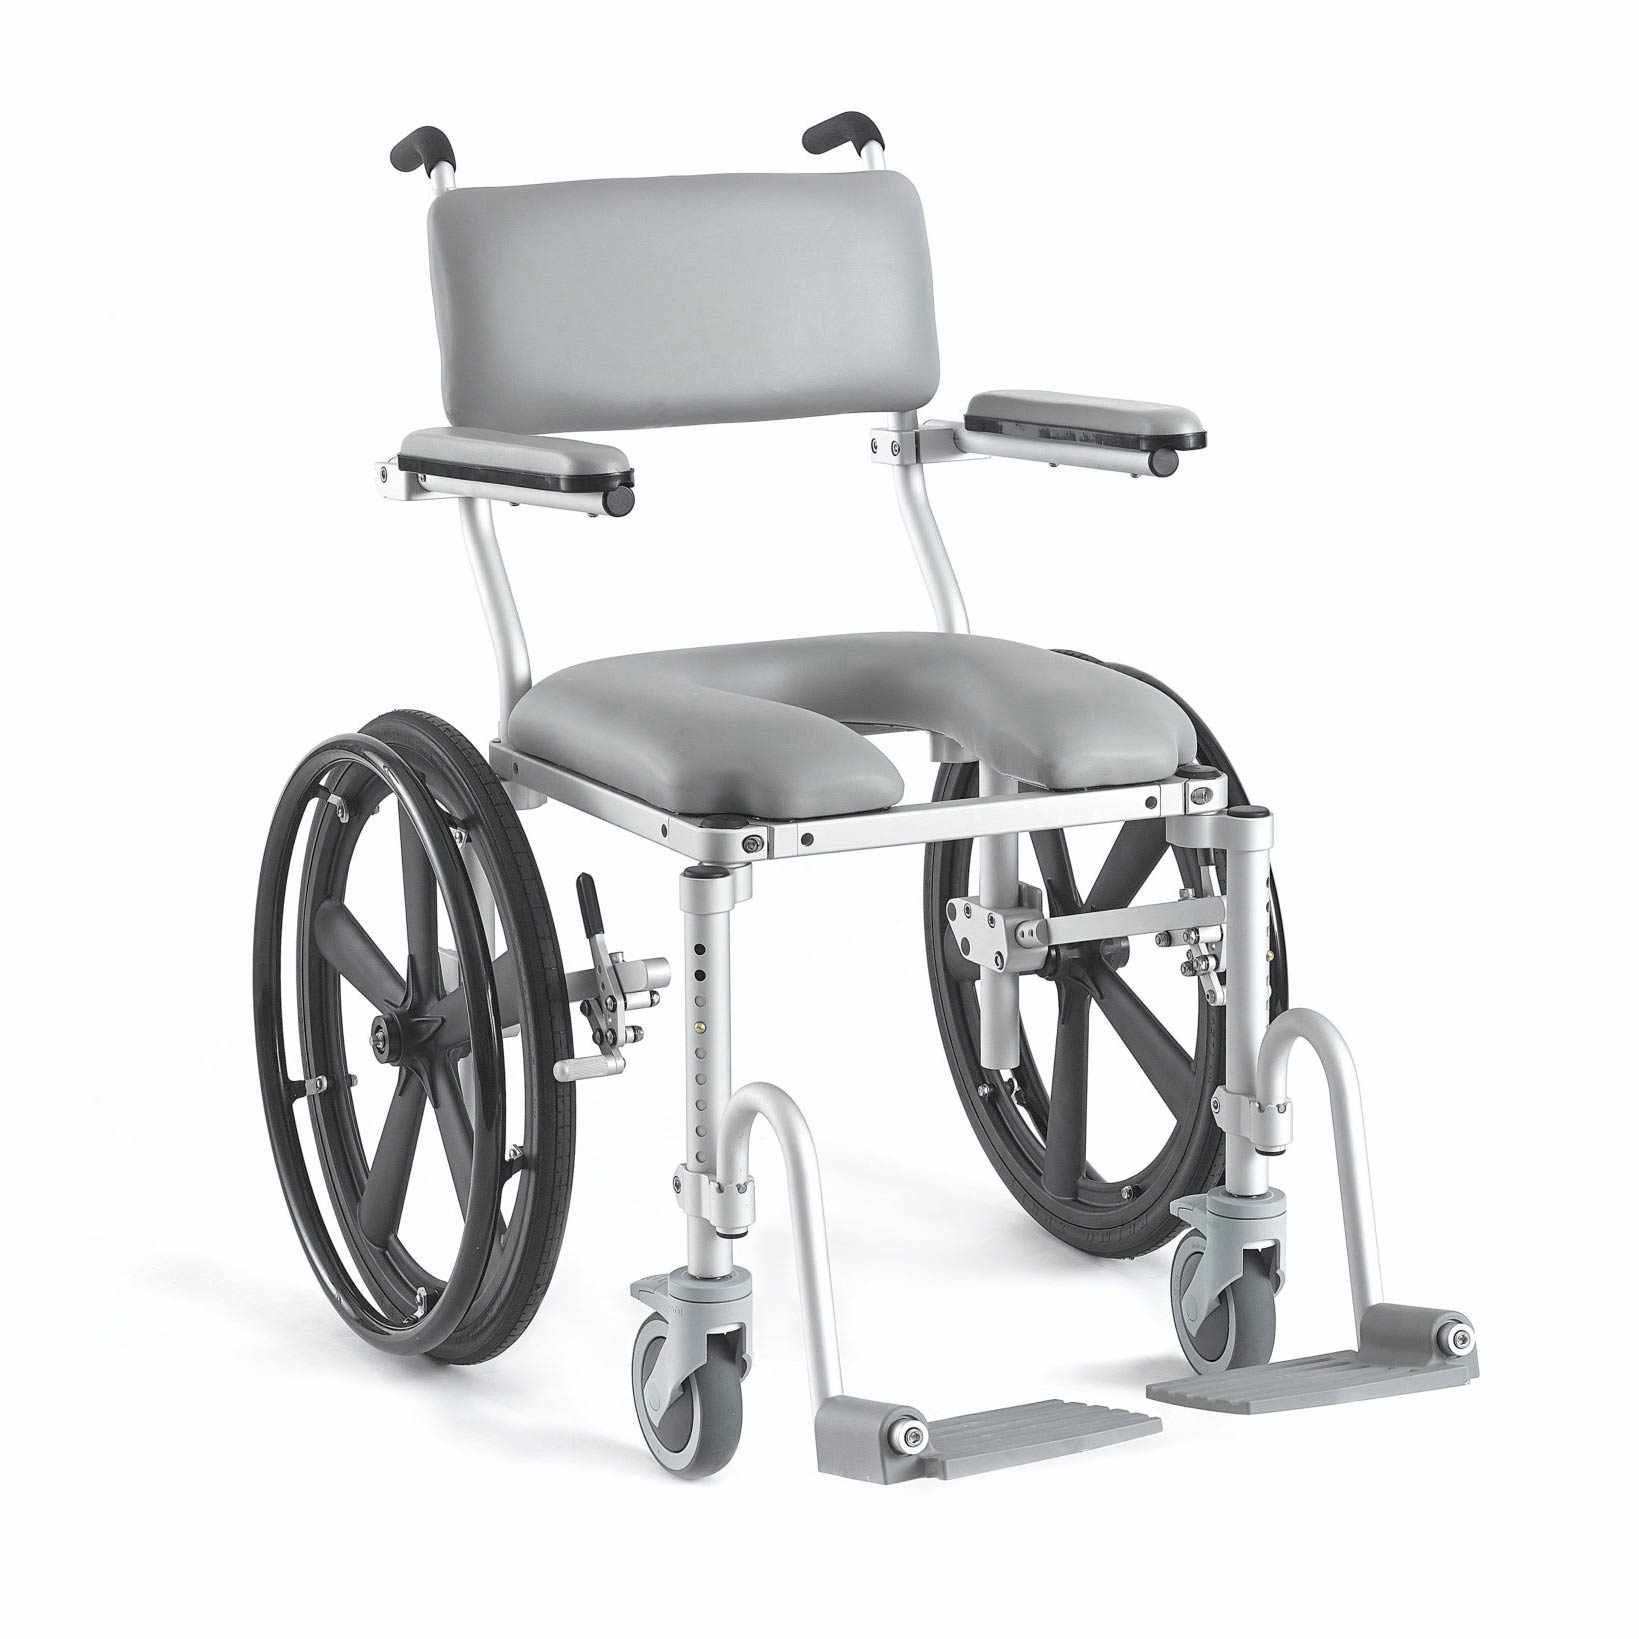 Nuprodx 4020 Roll-In-Shower Commode Chair   Medicaleshop